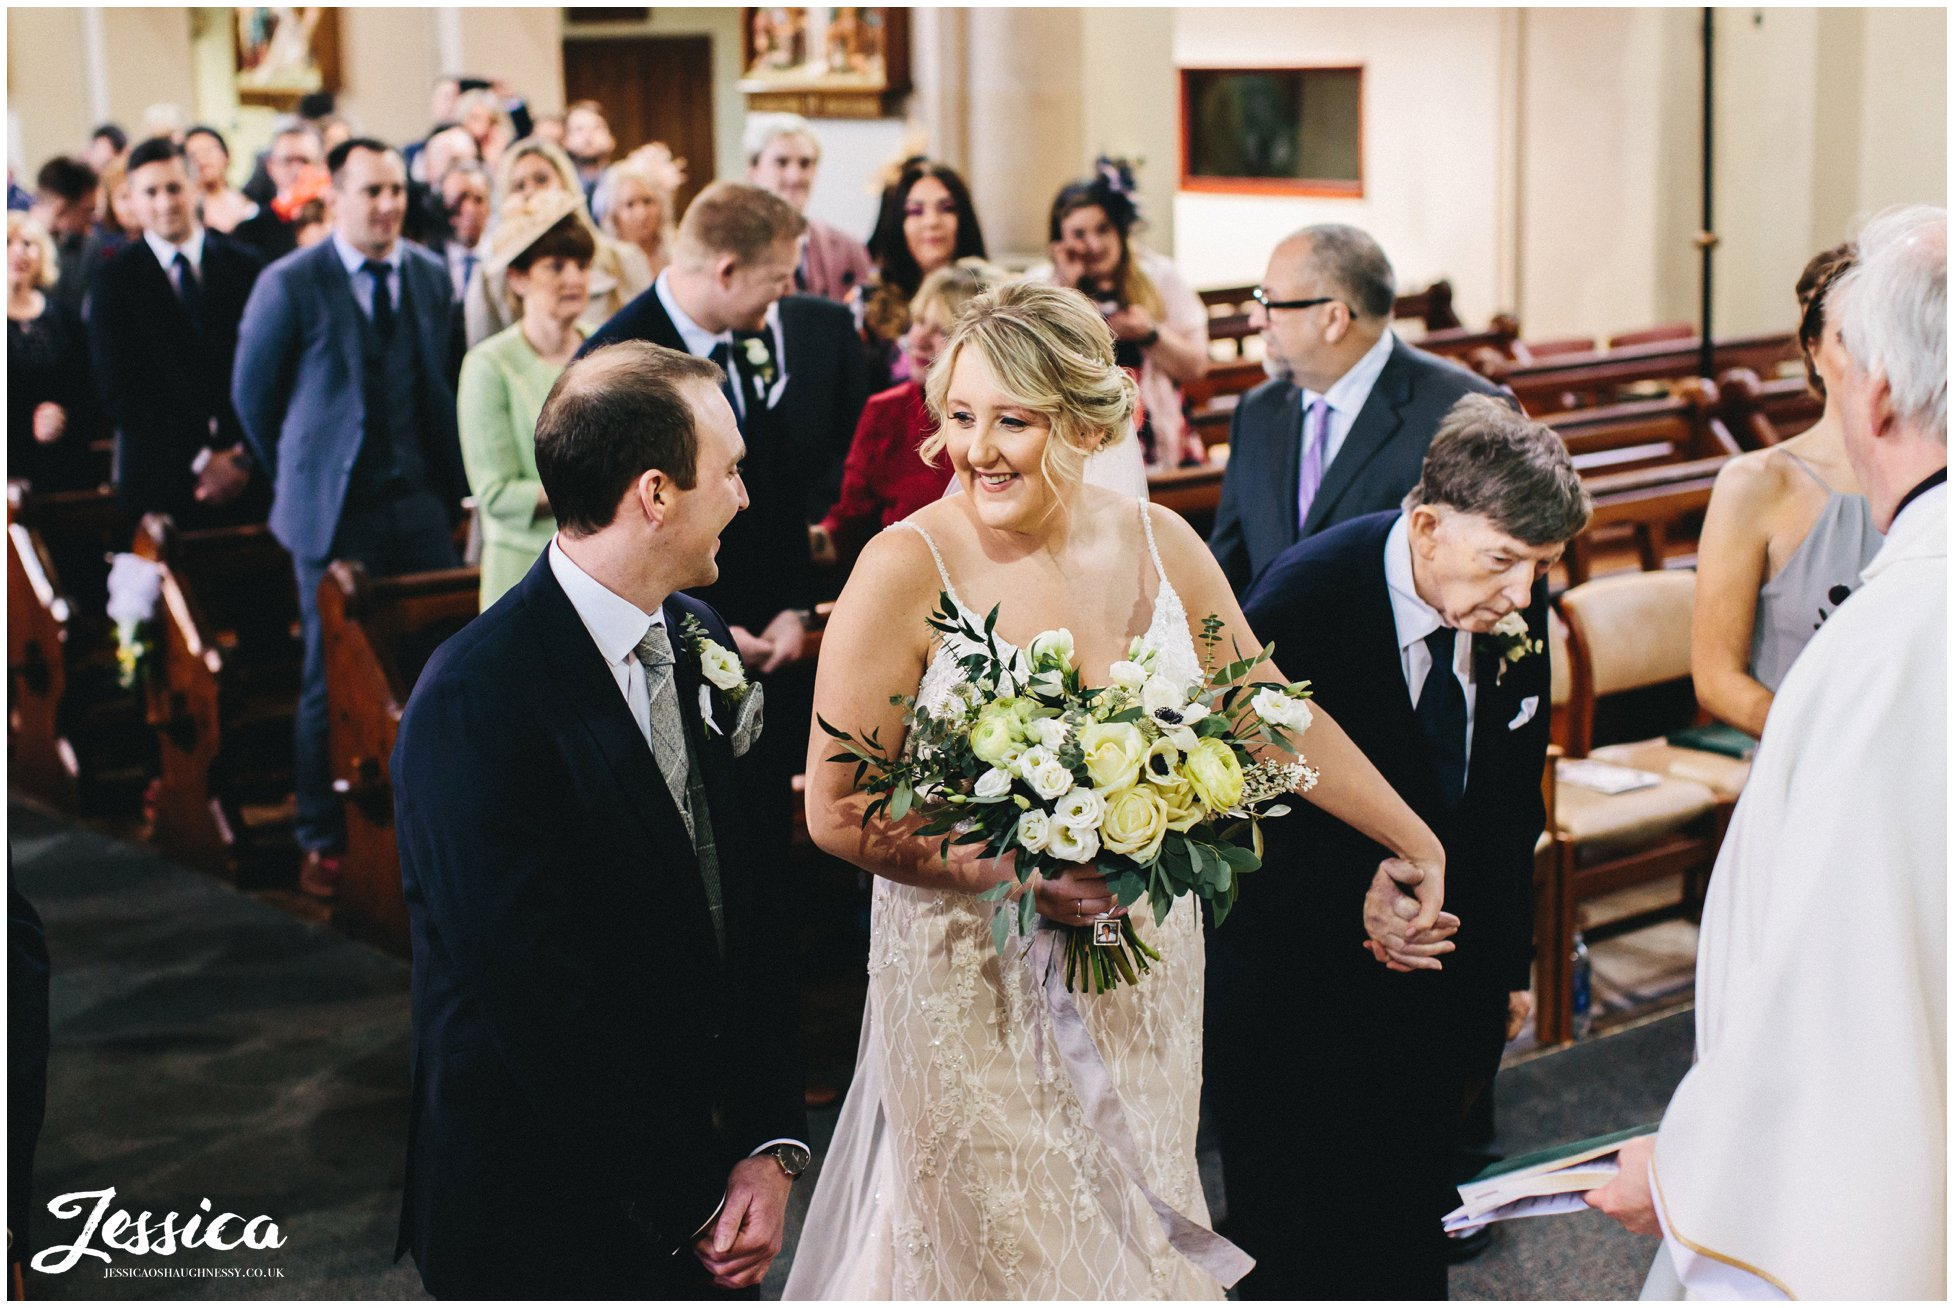 the bride & groom see each other for the first time